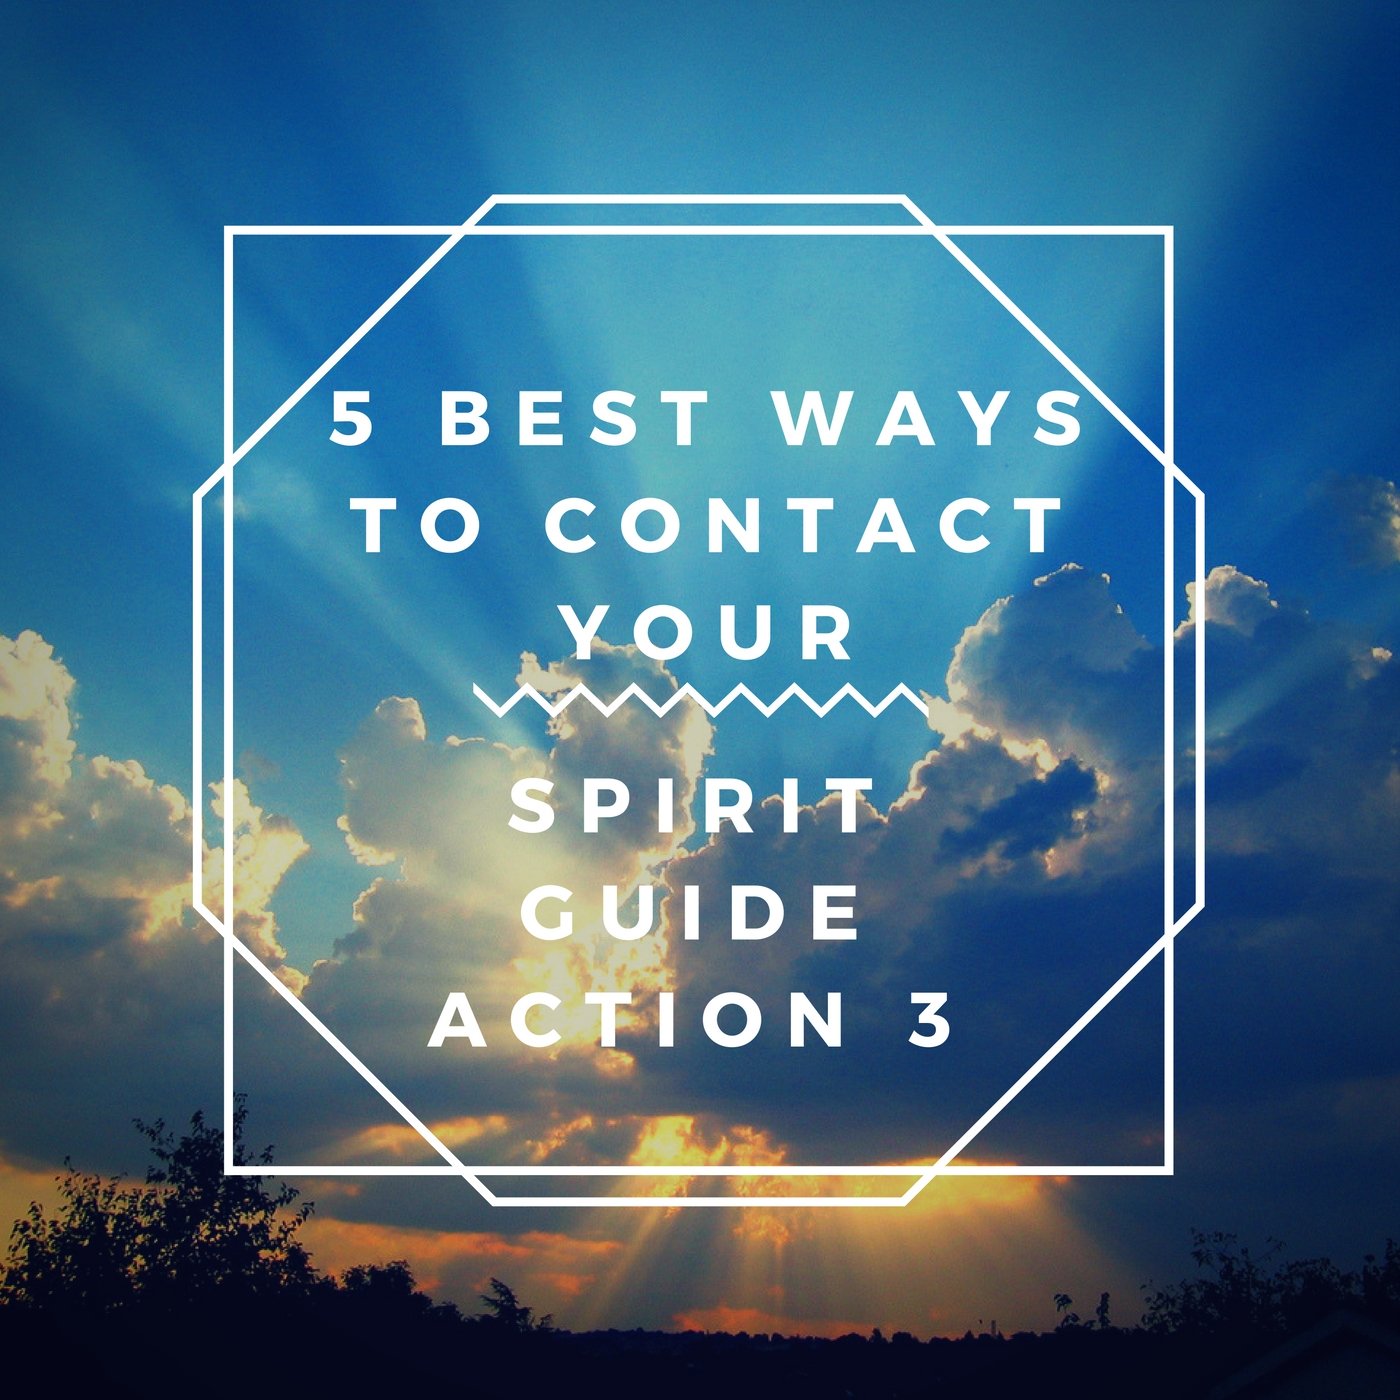 Best Ways to Contact your Spirit Guide